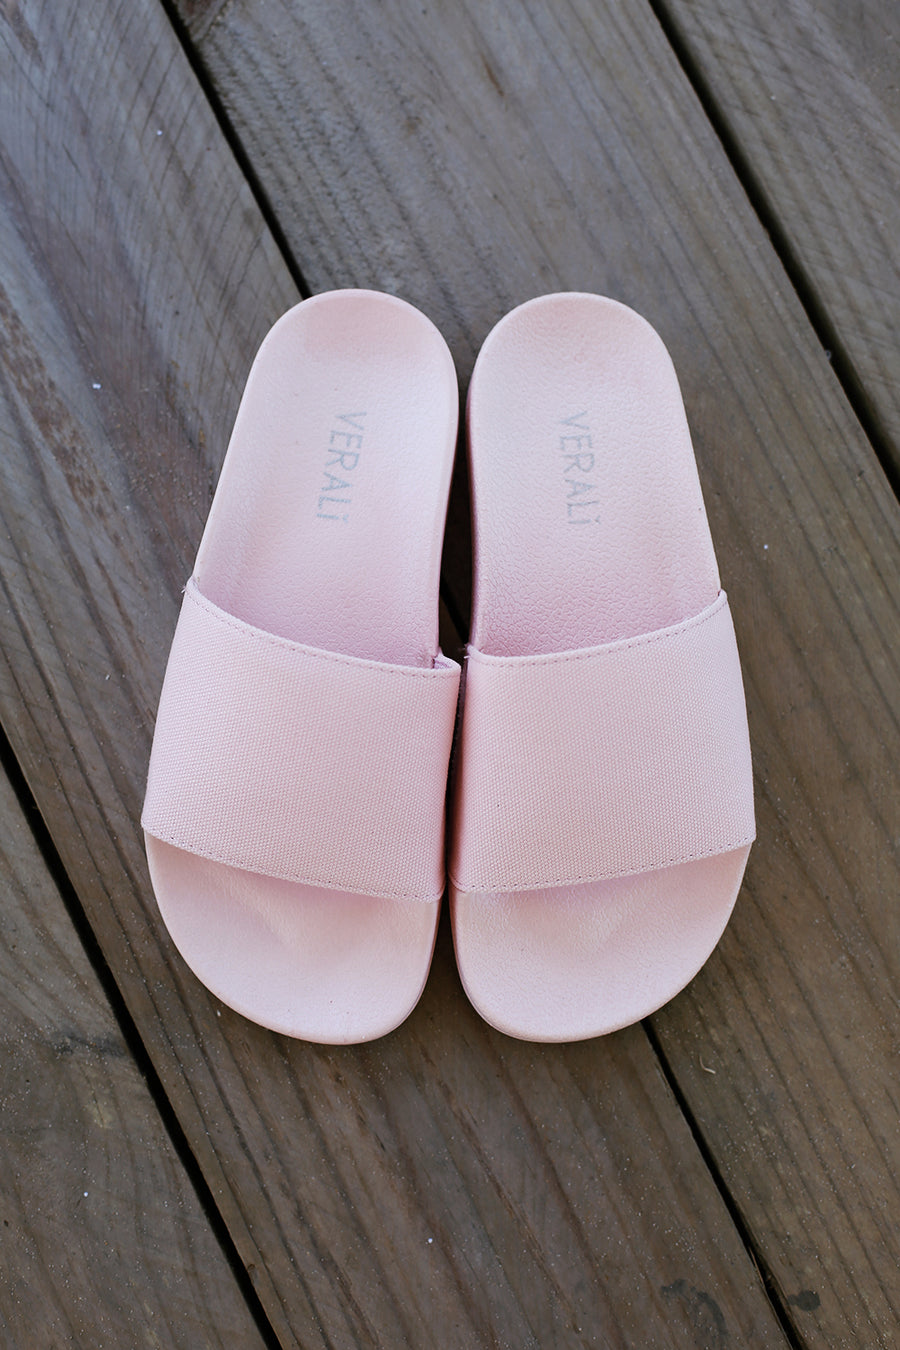 Splish Slides in Pink by Verali